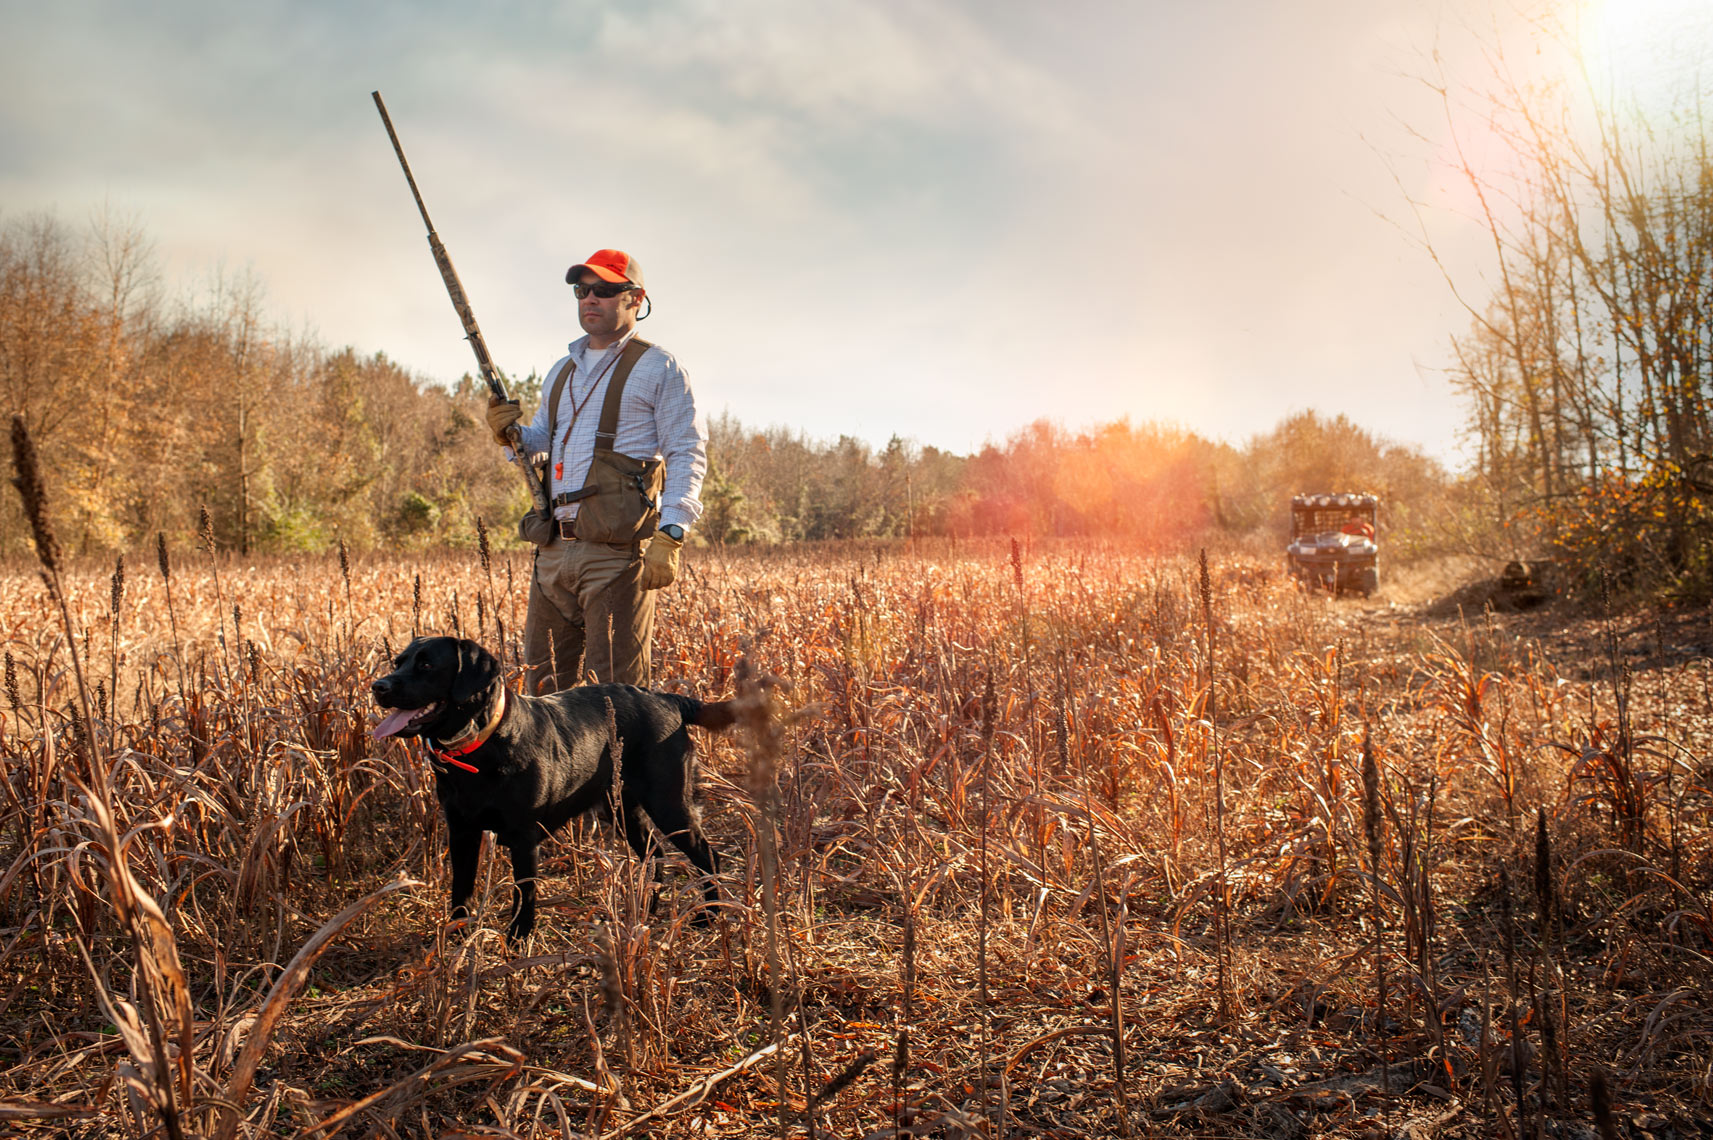 ©Robb Scharetg - Dean, Bena and Squire, bird hunting.